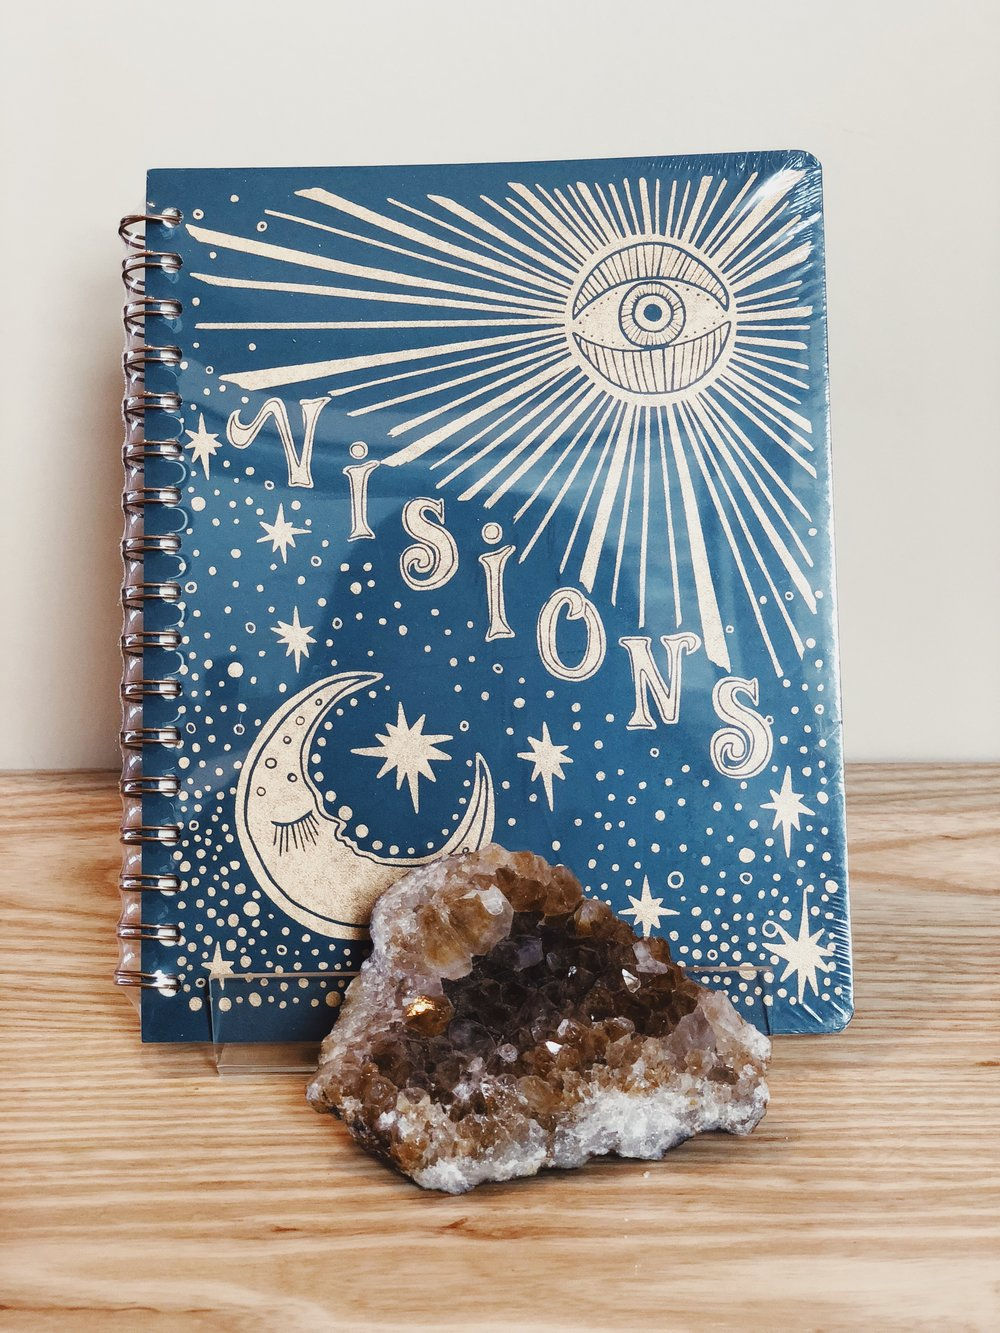 Native Bear Visions Notebook $22  A blank canvas for your dreams, ideas, thoughts, and doodles.